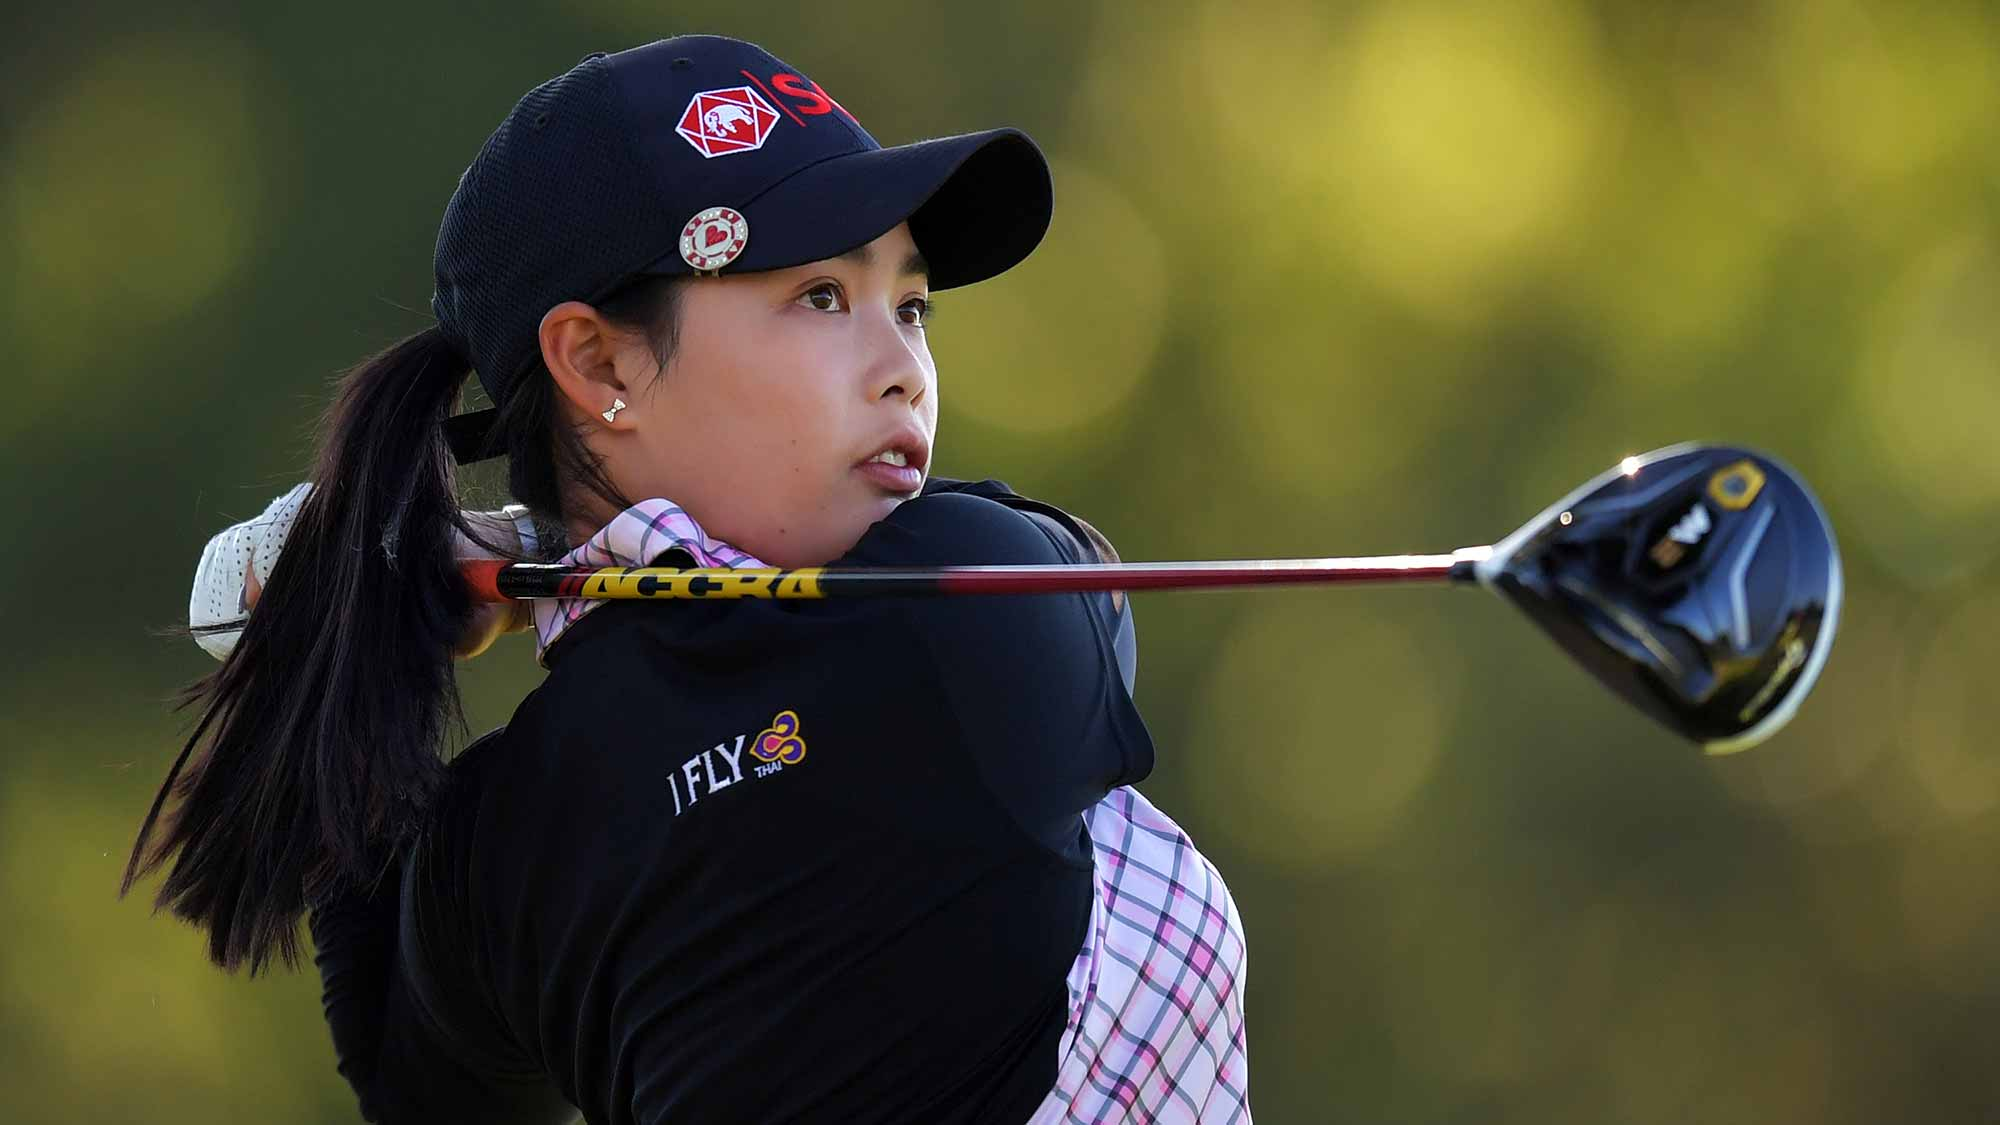 Moriya Jutanugarn of Thailand hits her tee shot on the 16th hole during the second round of the Walmart NW Arkansas Championship Presented by P&G